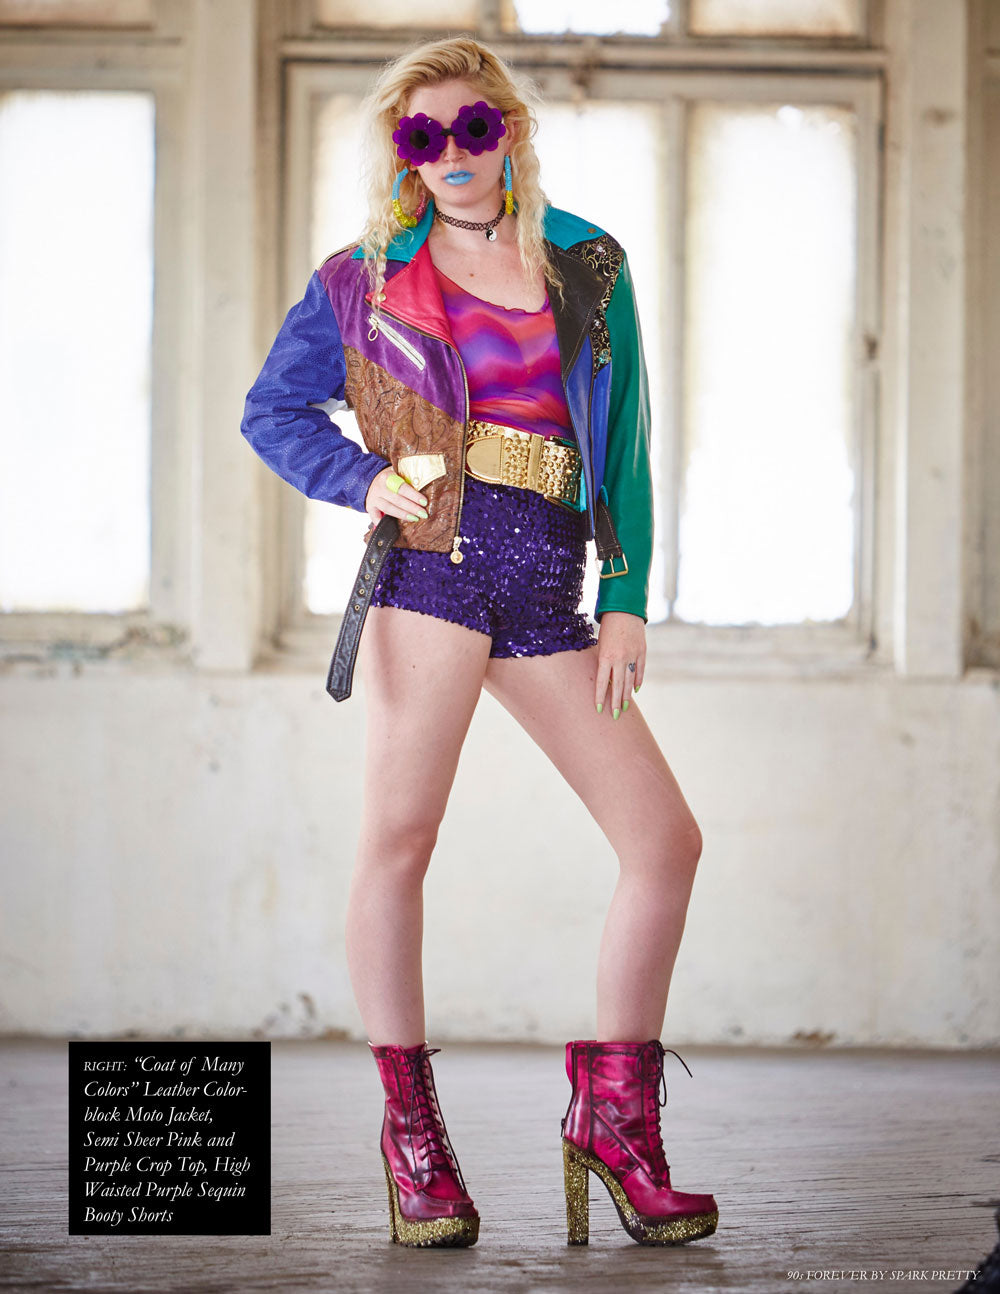 90s Forever Retro Vintage Fashion Apparel Lookbook - Leather Color-block Moto Jacket, Semi Sheer Pink and Purple Crop Top, High Waisted Purple Sequin Booty Shorts